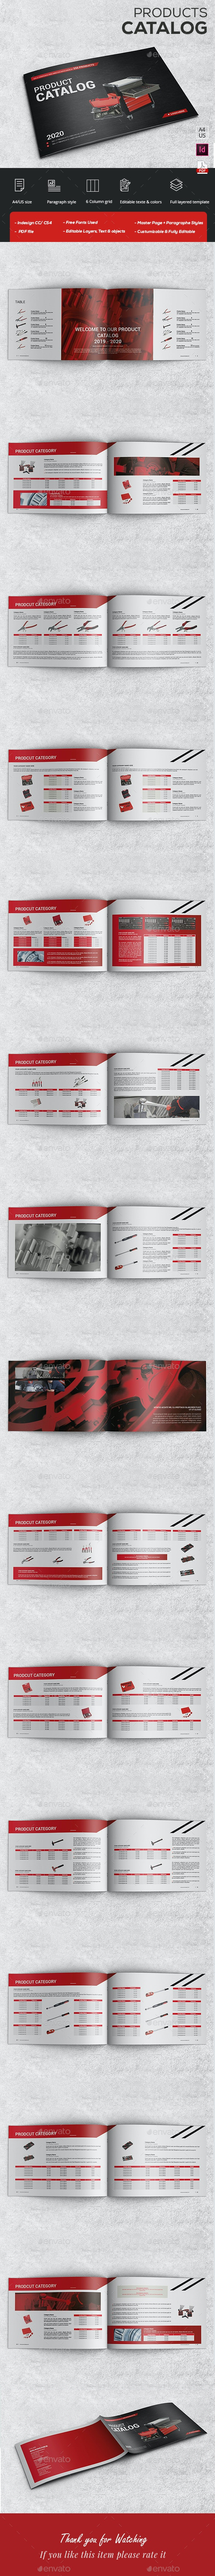 Industrial Catalog Products - Catalogs Brochures